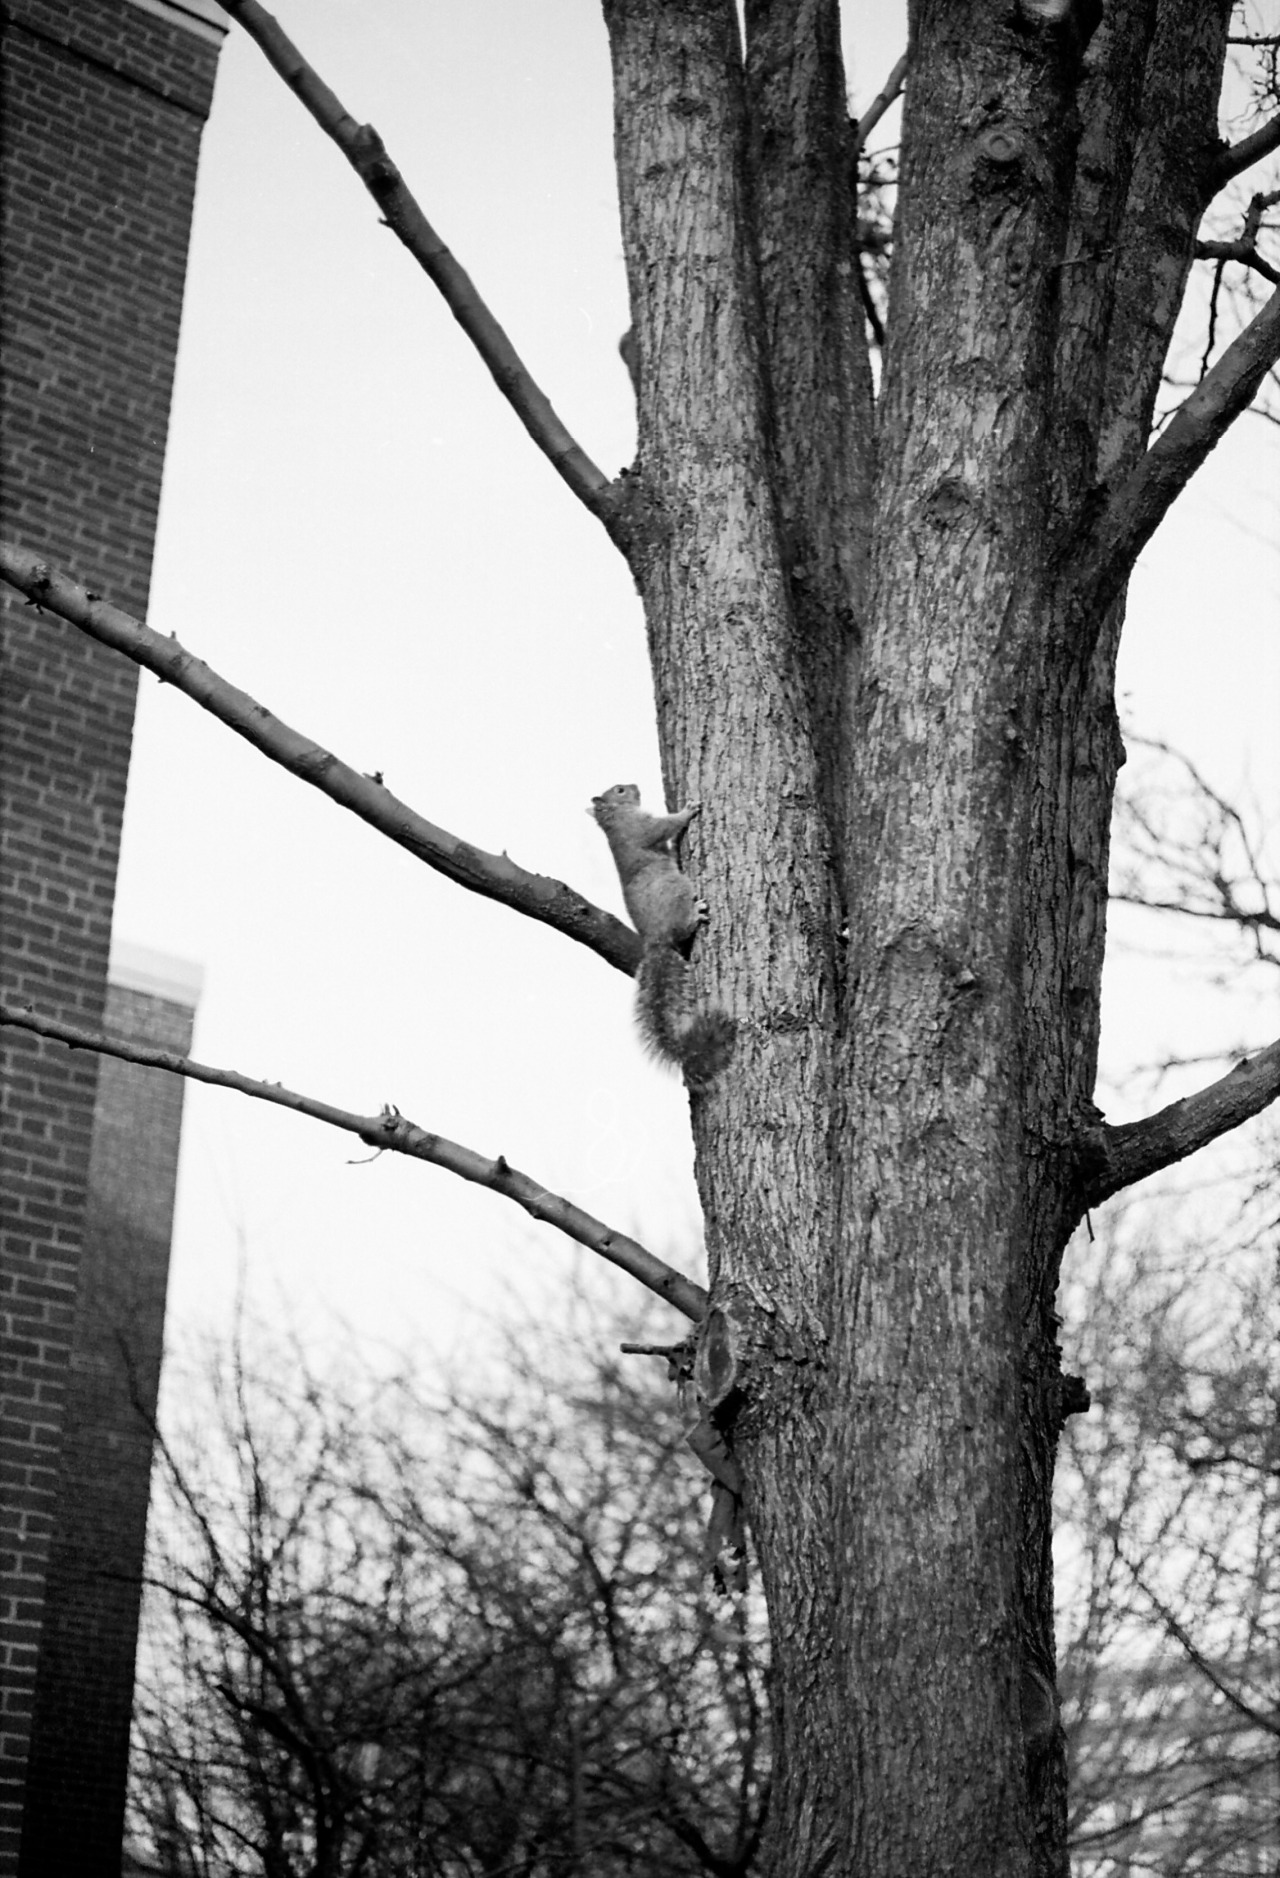 squirrel 35mm